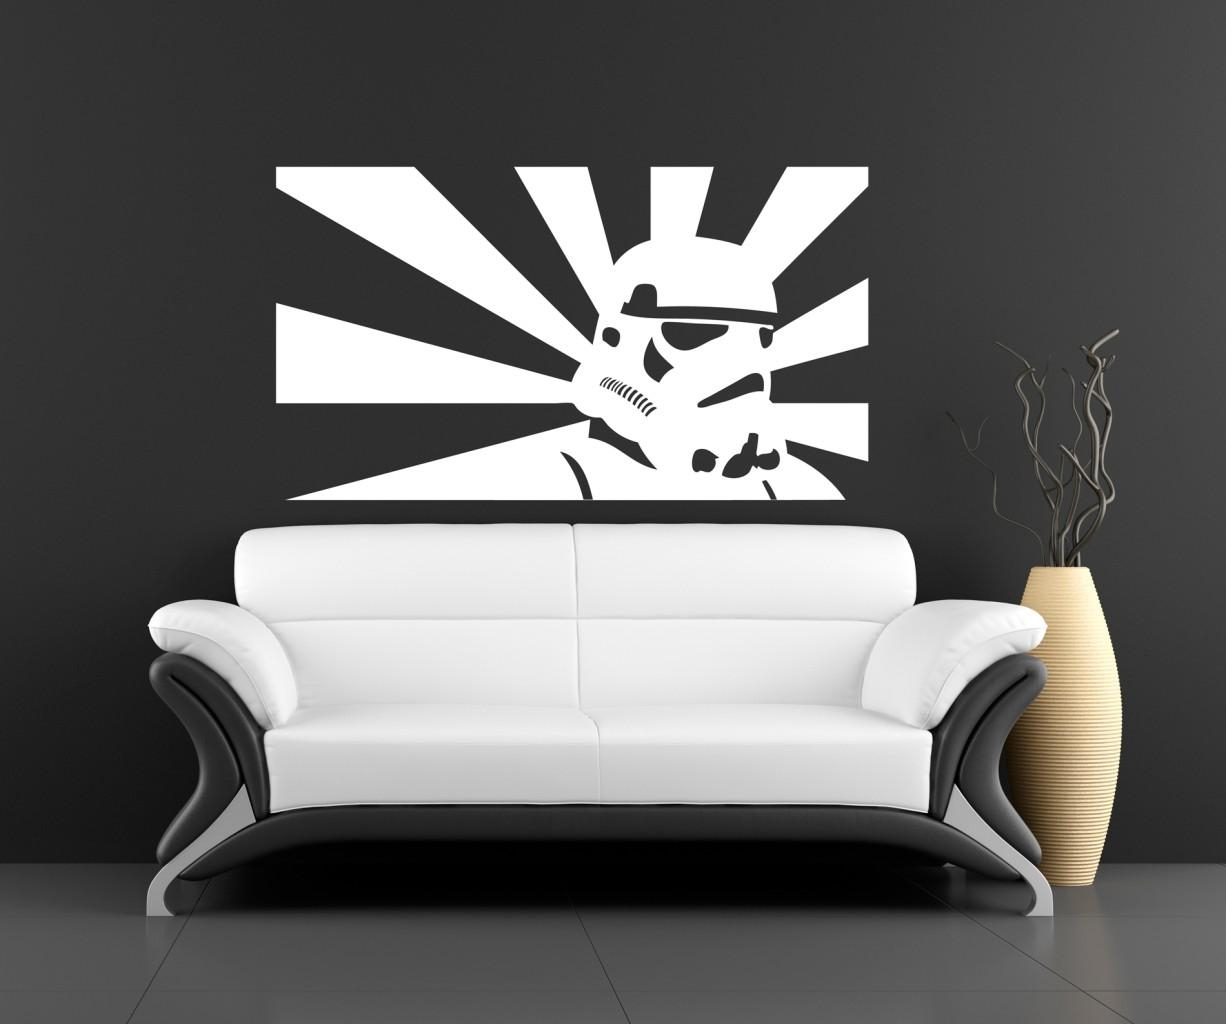 45 Best Star Wars Room Ideas For 2017 Intended For Diy Star Wars Wall Art (Photo 18 of 20)